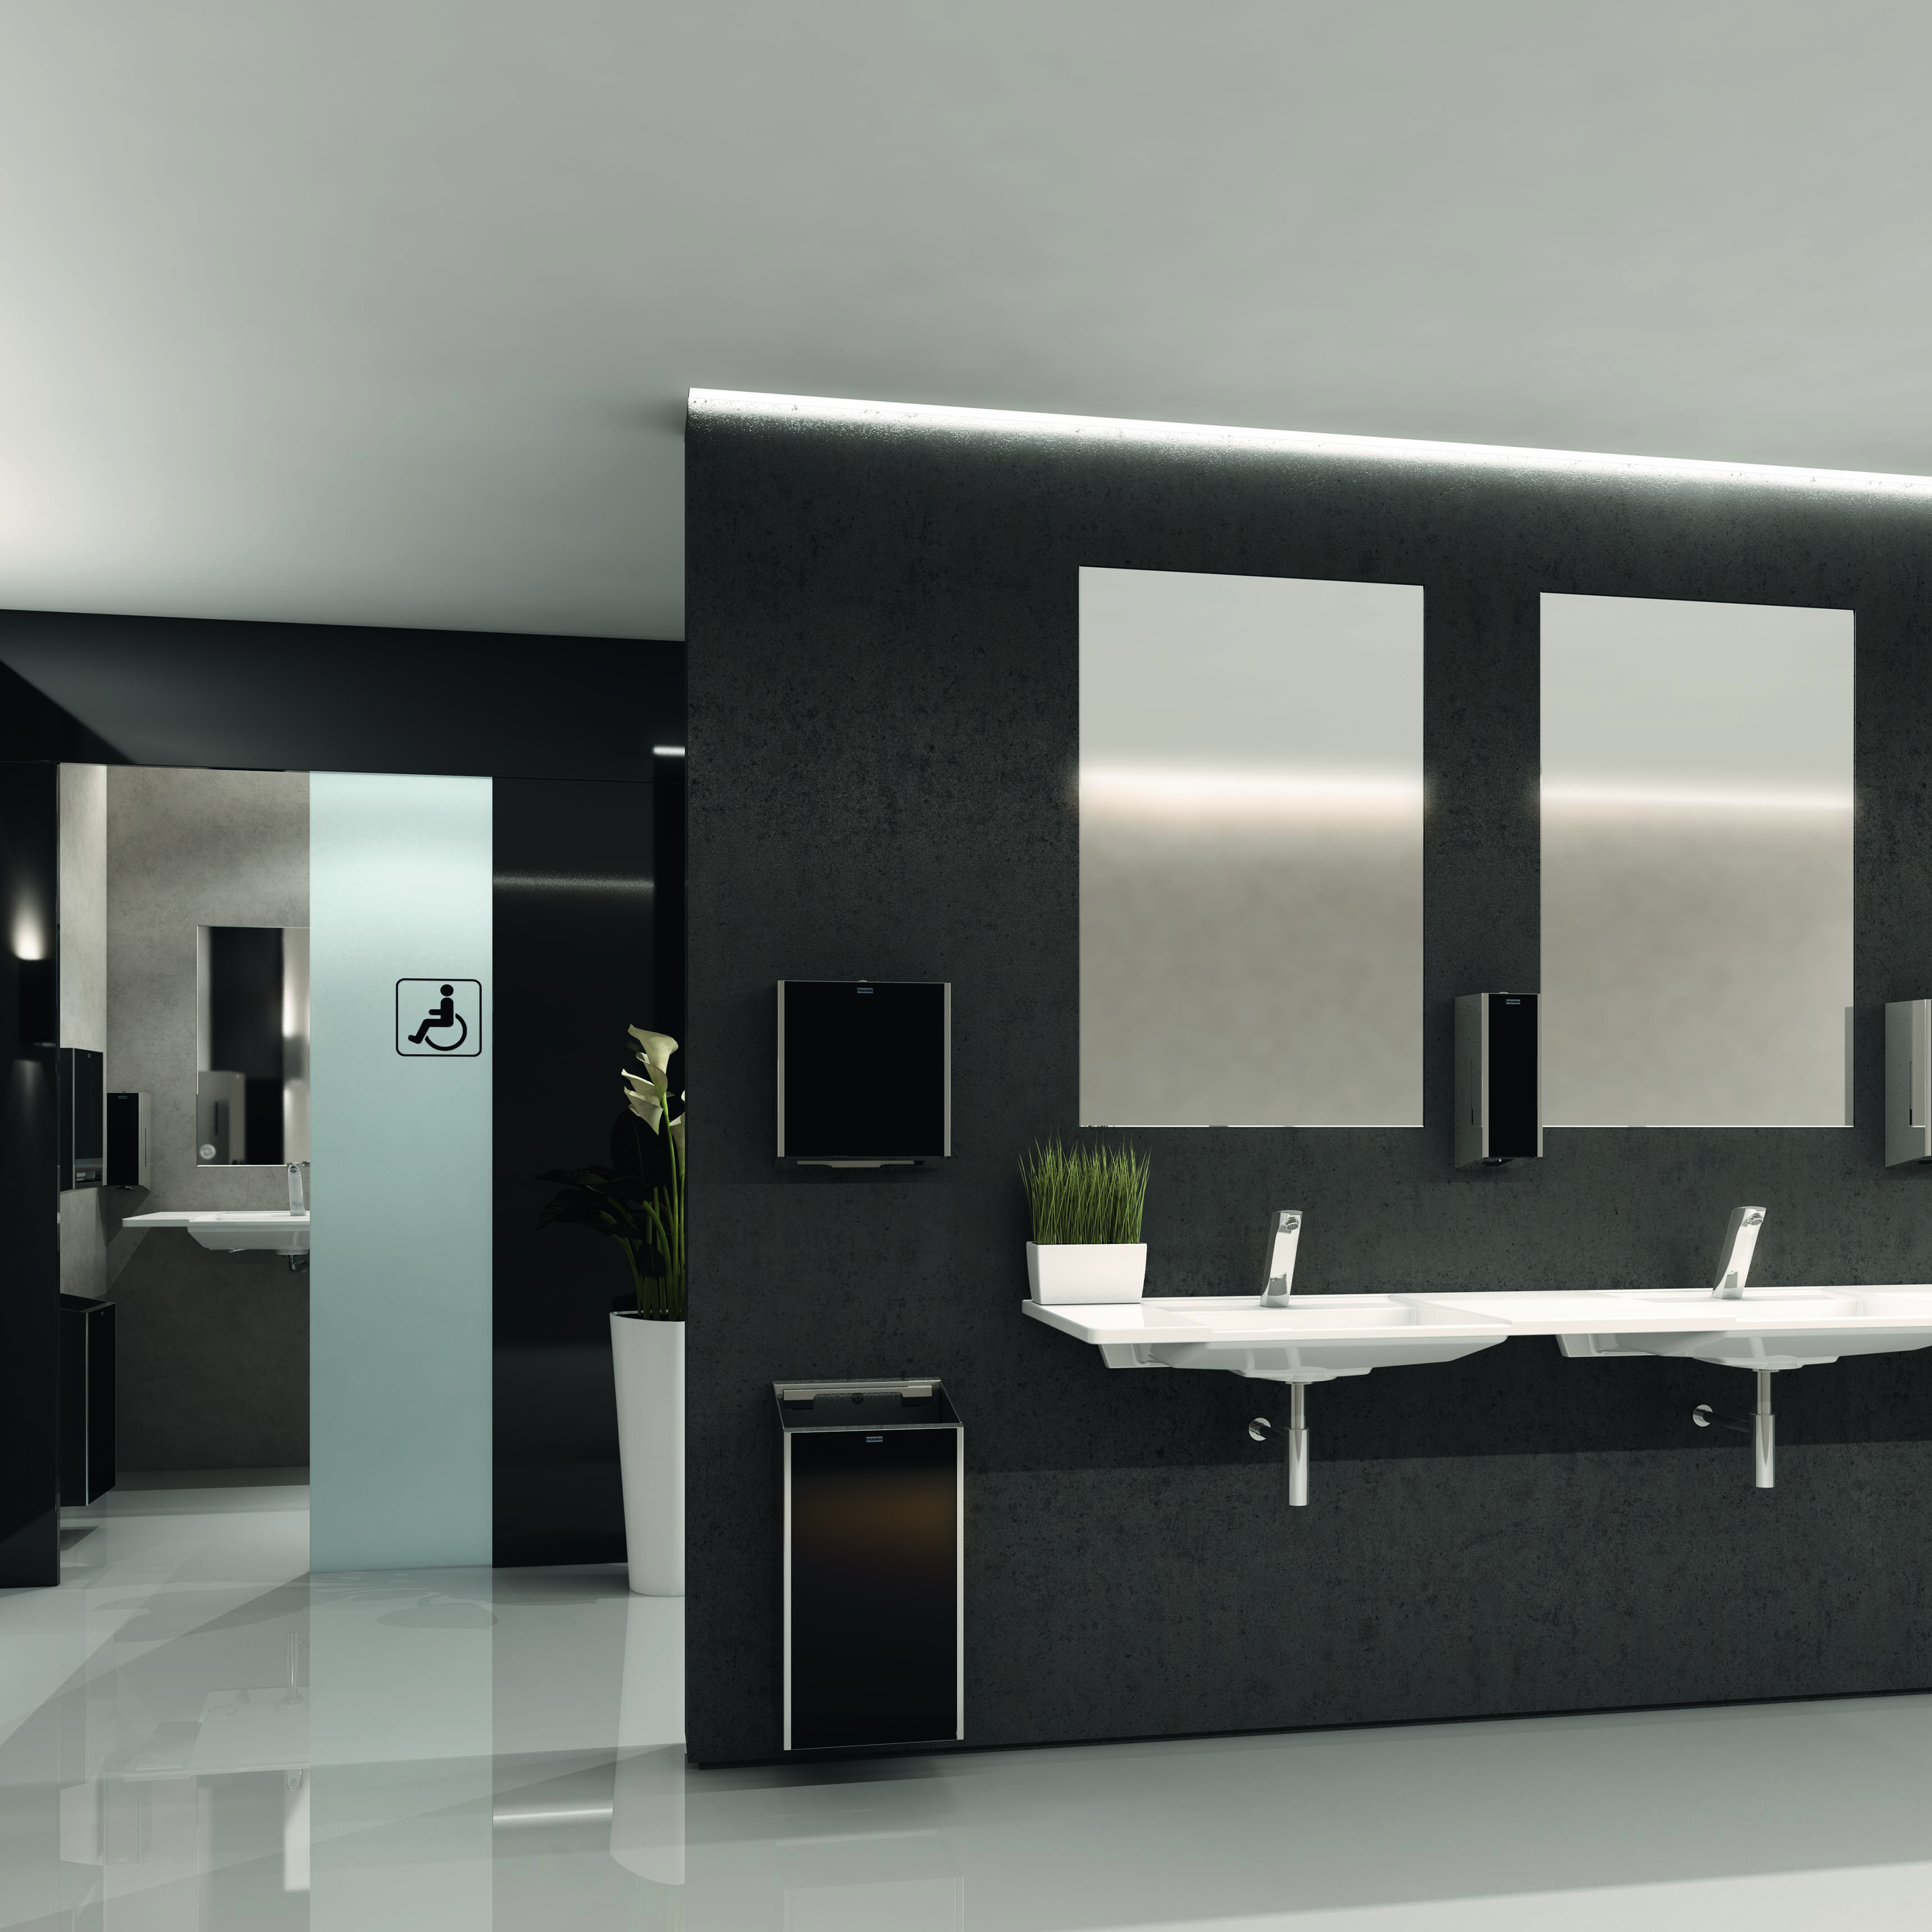 Washroom Products: Franke Introduces New Modular EXOS Range Of Accessories